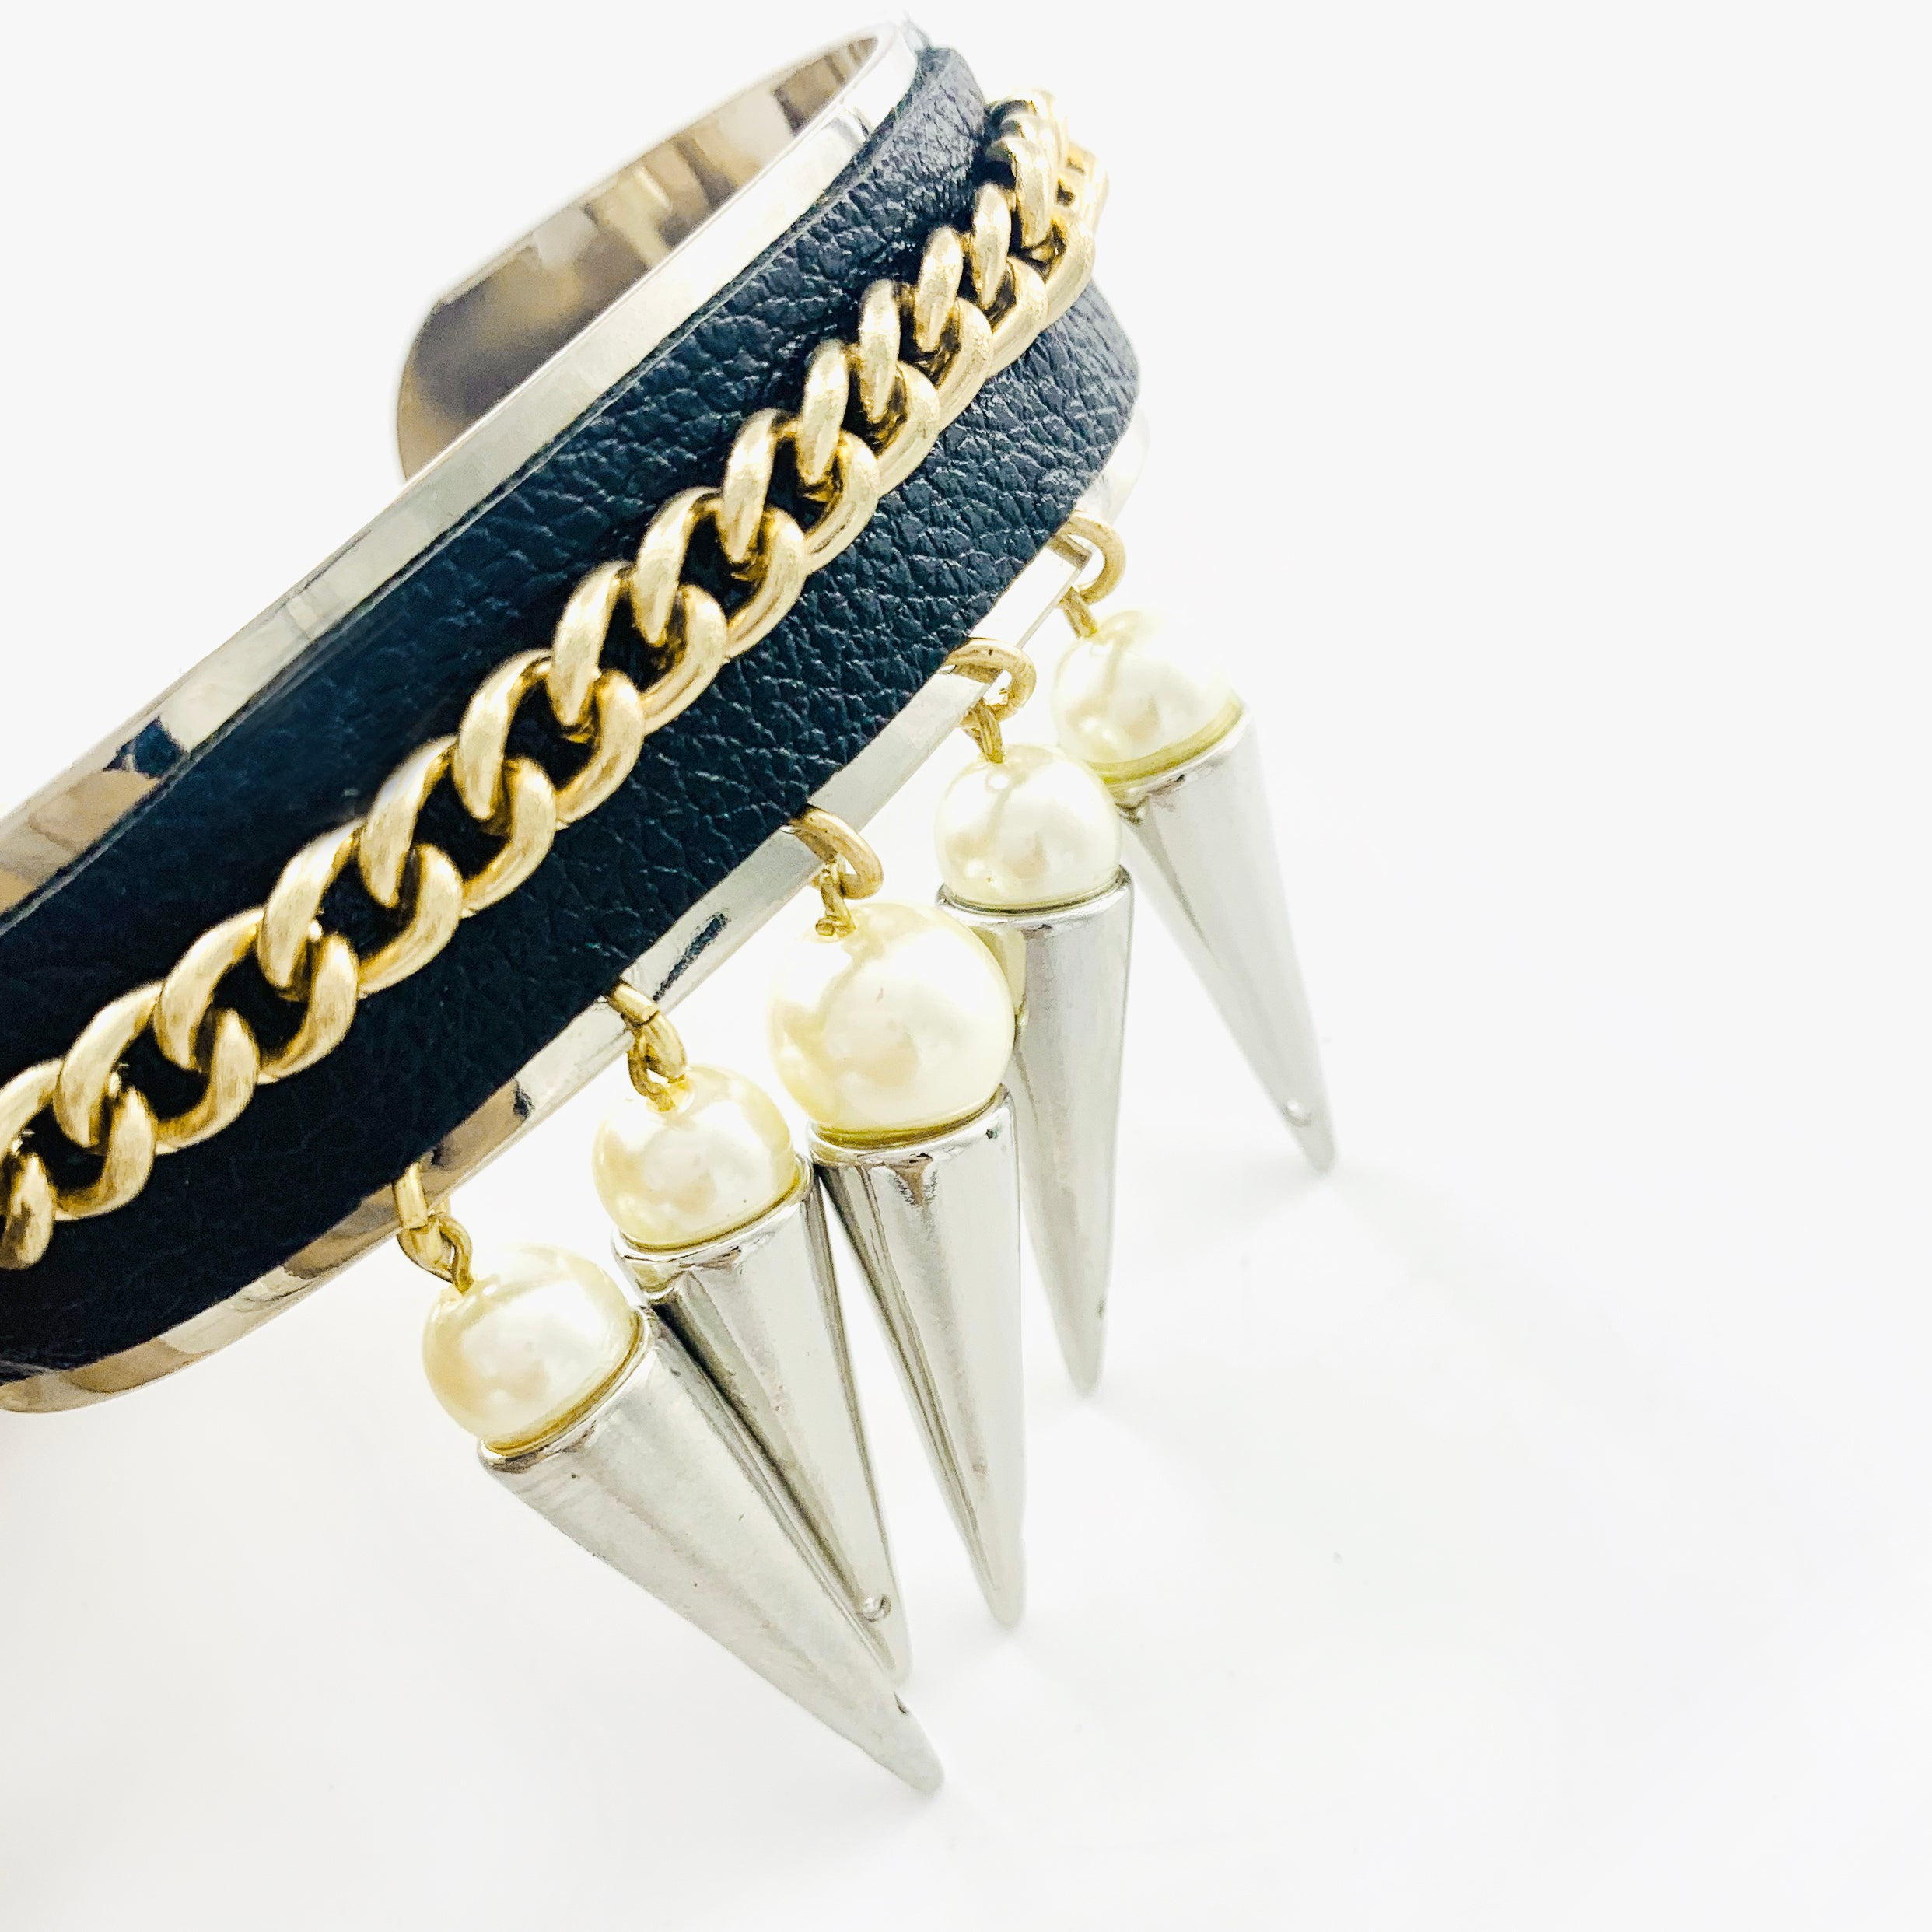 Black leather cuff with dangling pearl charms